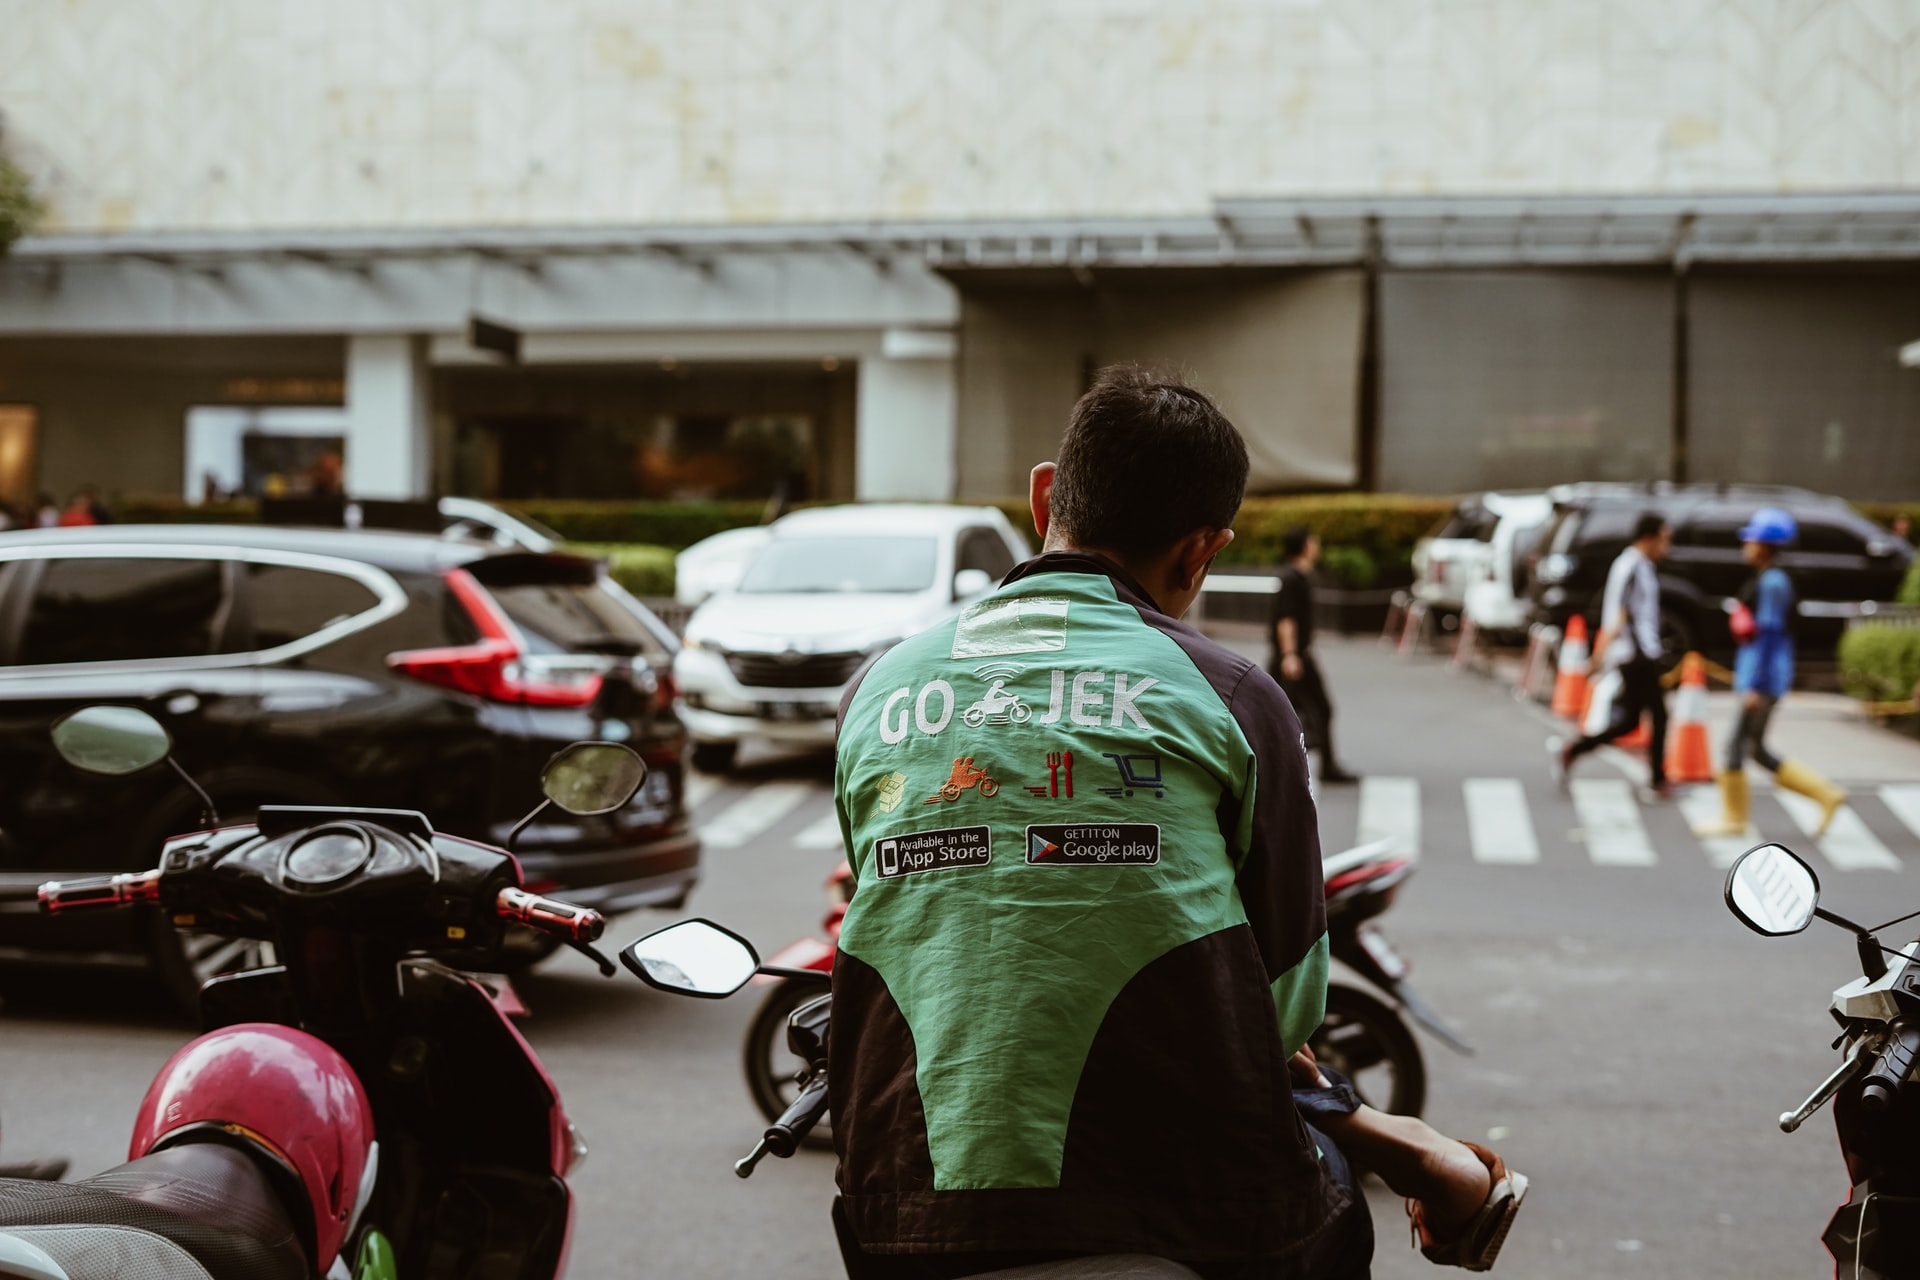 Gojek, motorbikes, motorcycles, transportation, Indonesia